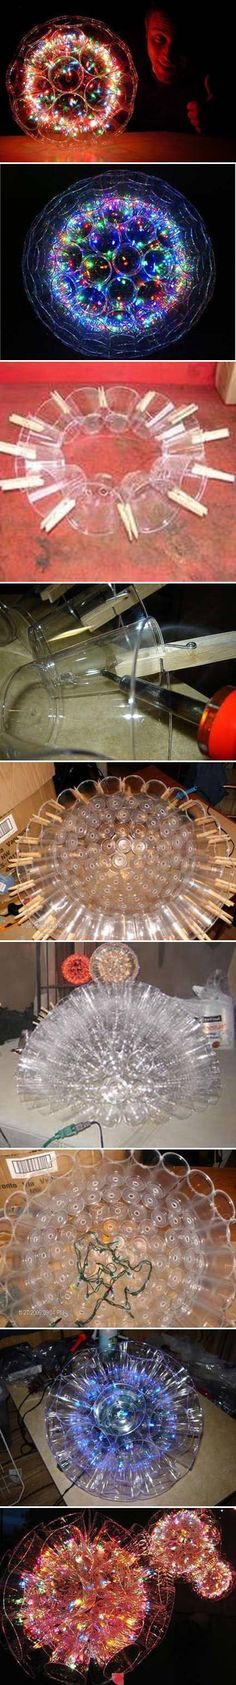 DIY Lighting Ideas: Lamps & Chandeliers Made From Everyday Objects Sparkle Balls! Plastic cups stuck together, with Christmas lights inside. Full tutorial at link Christmas Lights, Christmas Crafts, Christmas Decorations, Christmas Lamp, Diy Lampe, Cup Crafts, Easy Crafts, Navidad Diy, Ideias Diy